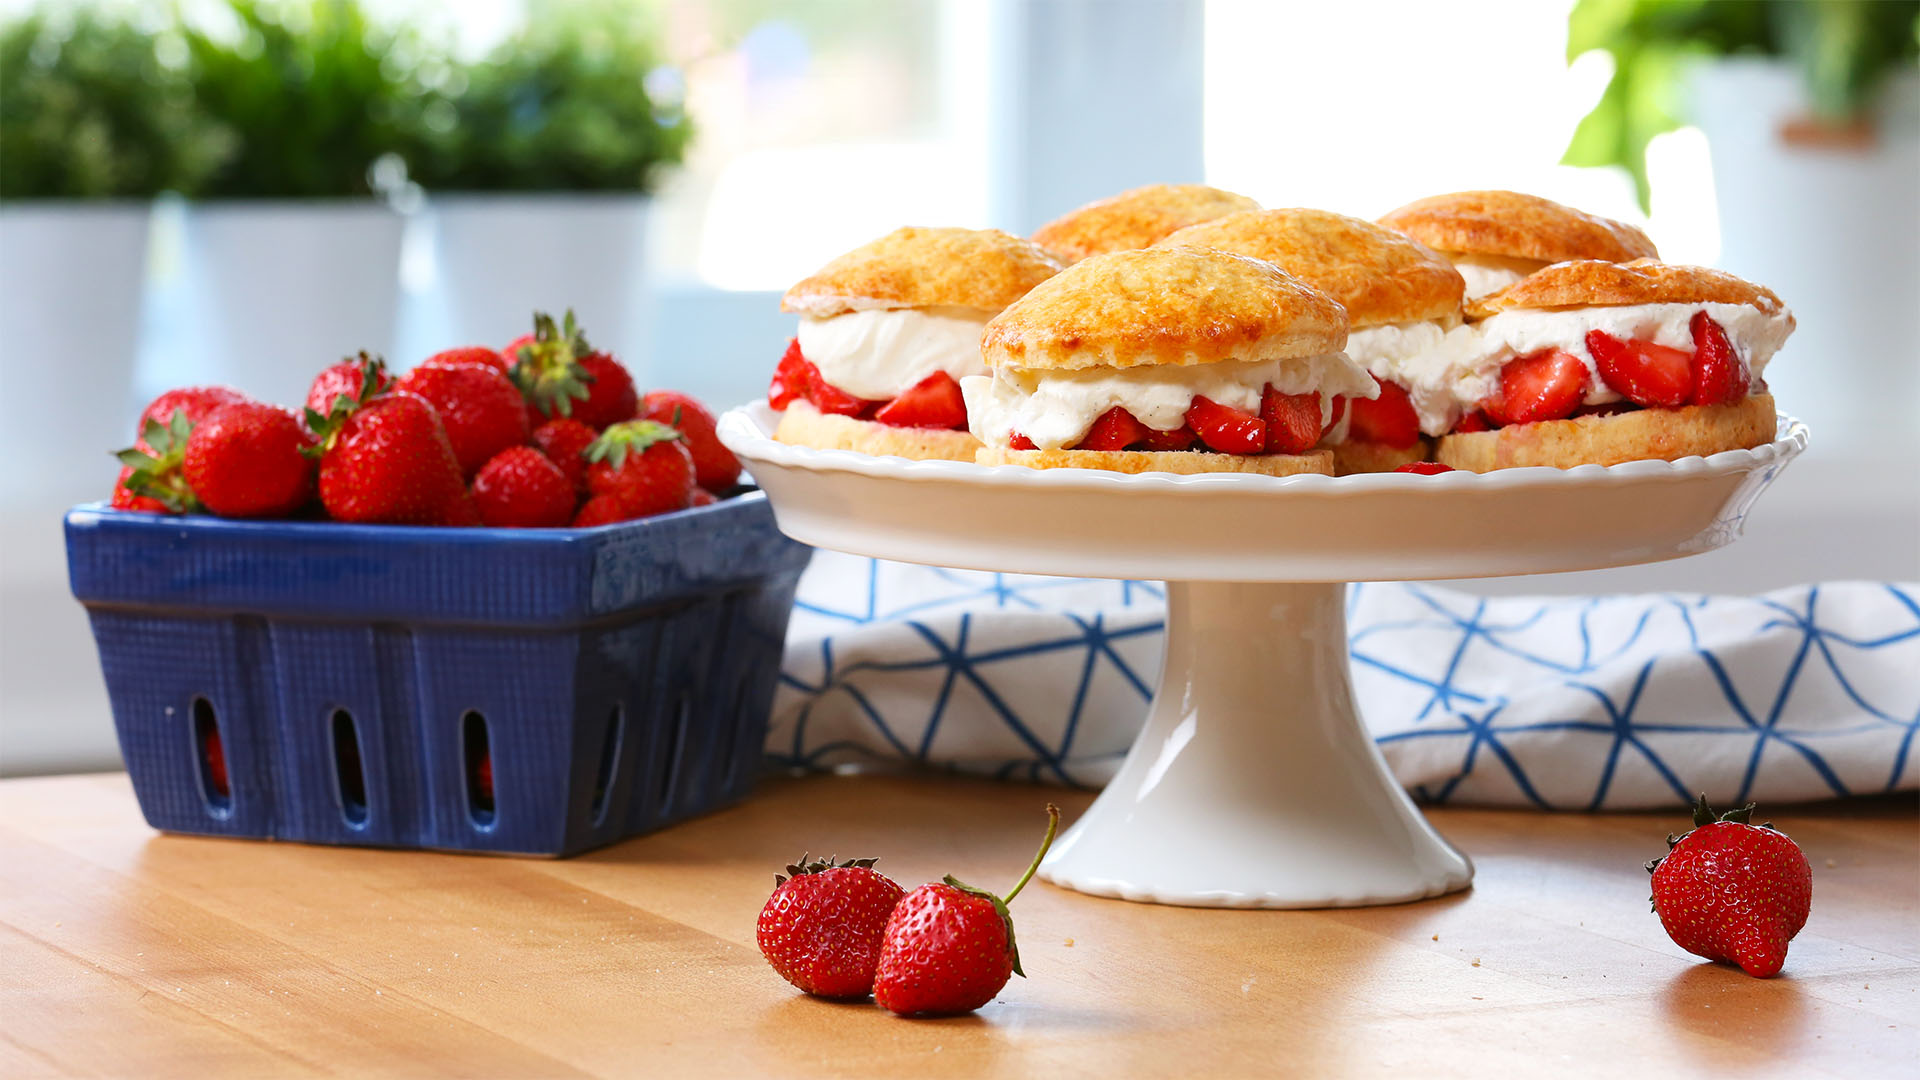 Easy-Strawberry-Shortcake 16x9